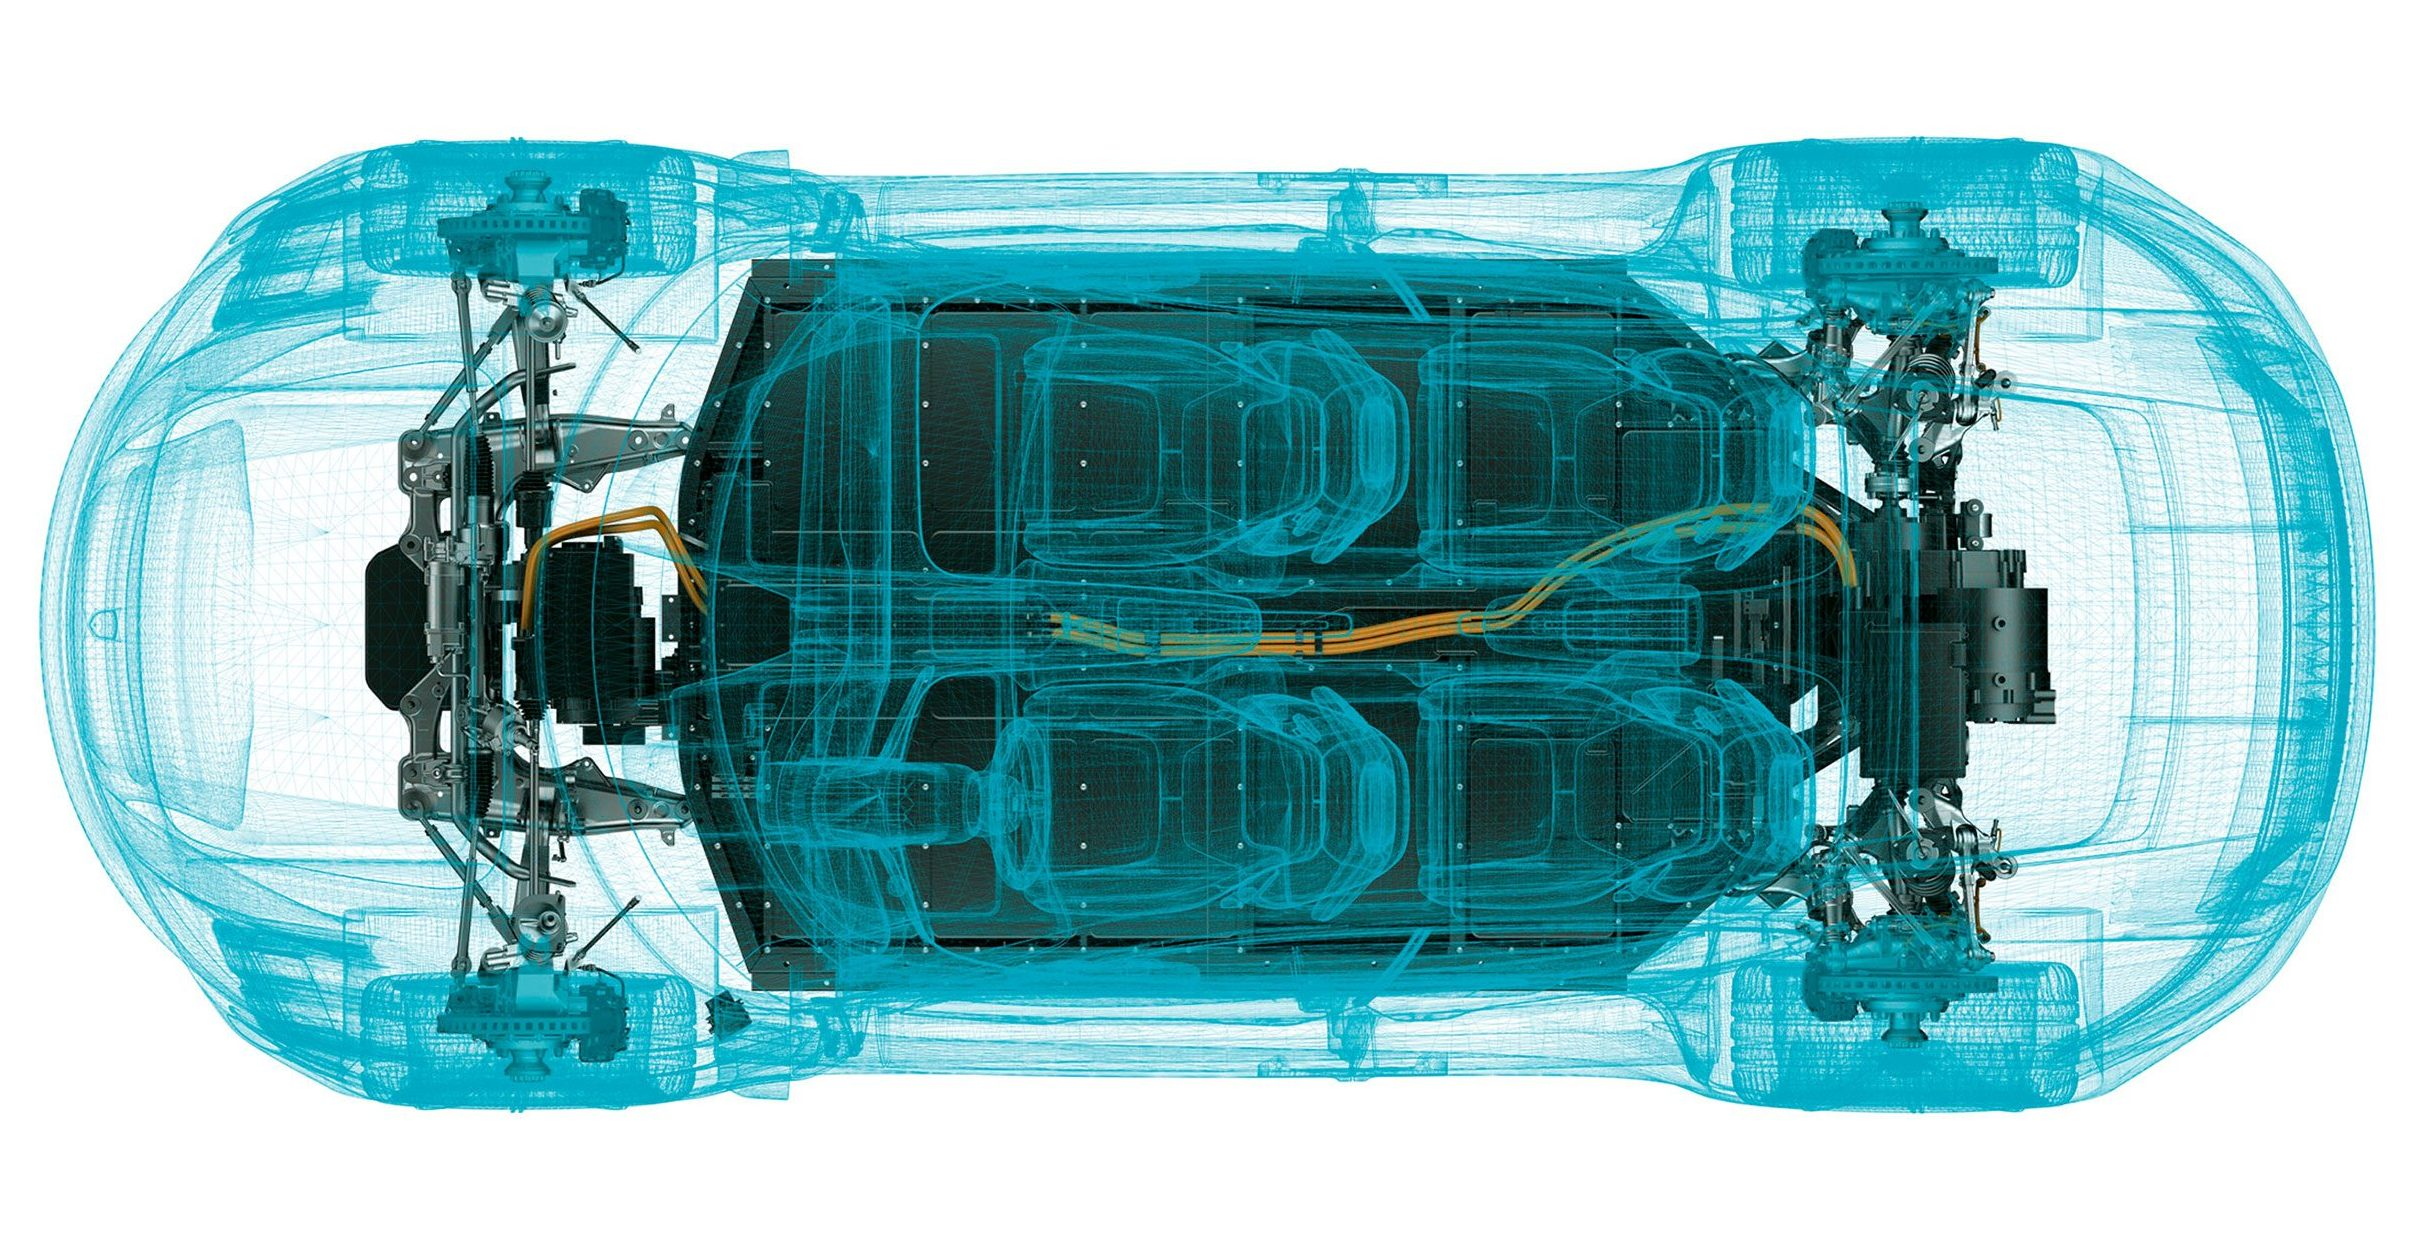 Porsche reveals and explains the Taycan all-electric powertrain in detail